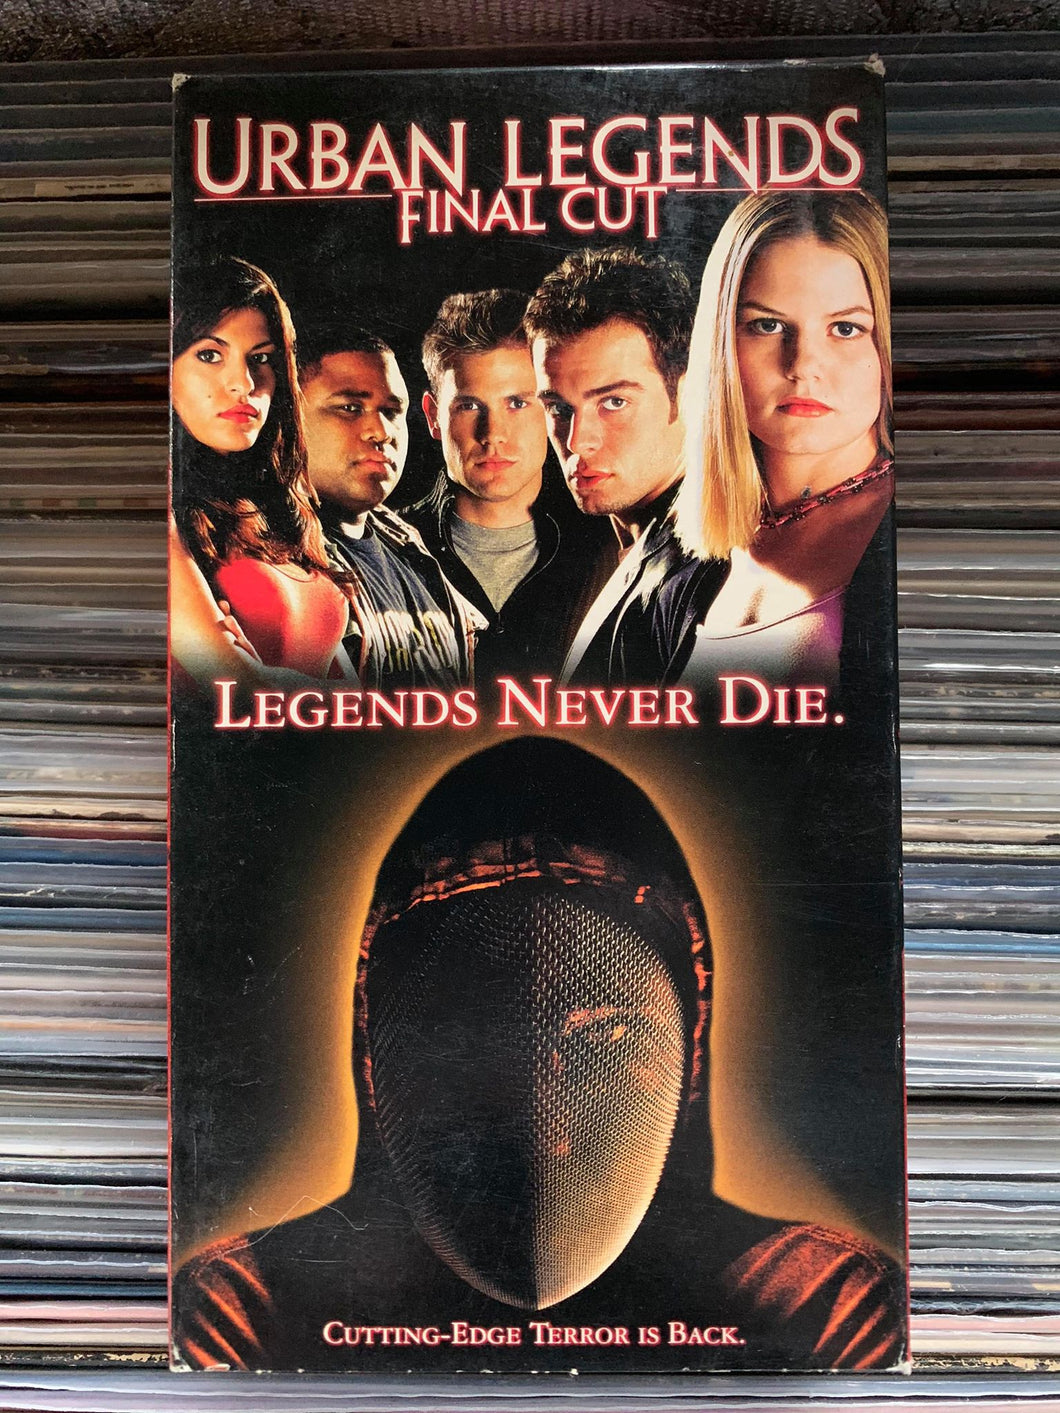 Urban Legends Final Cut VHS